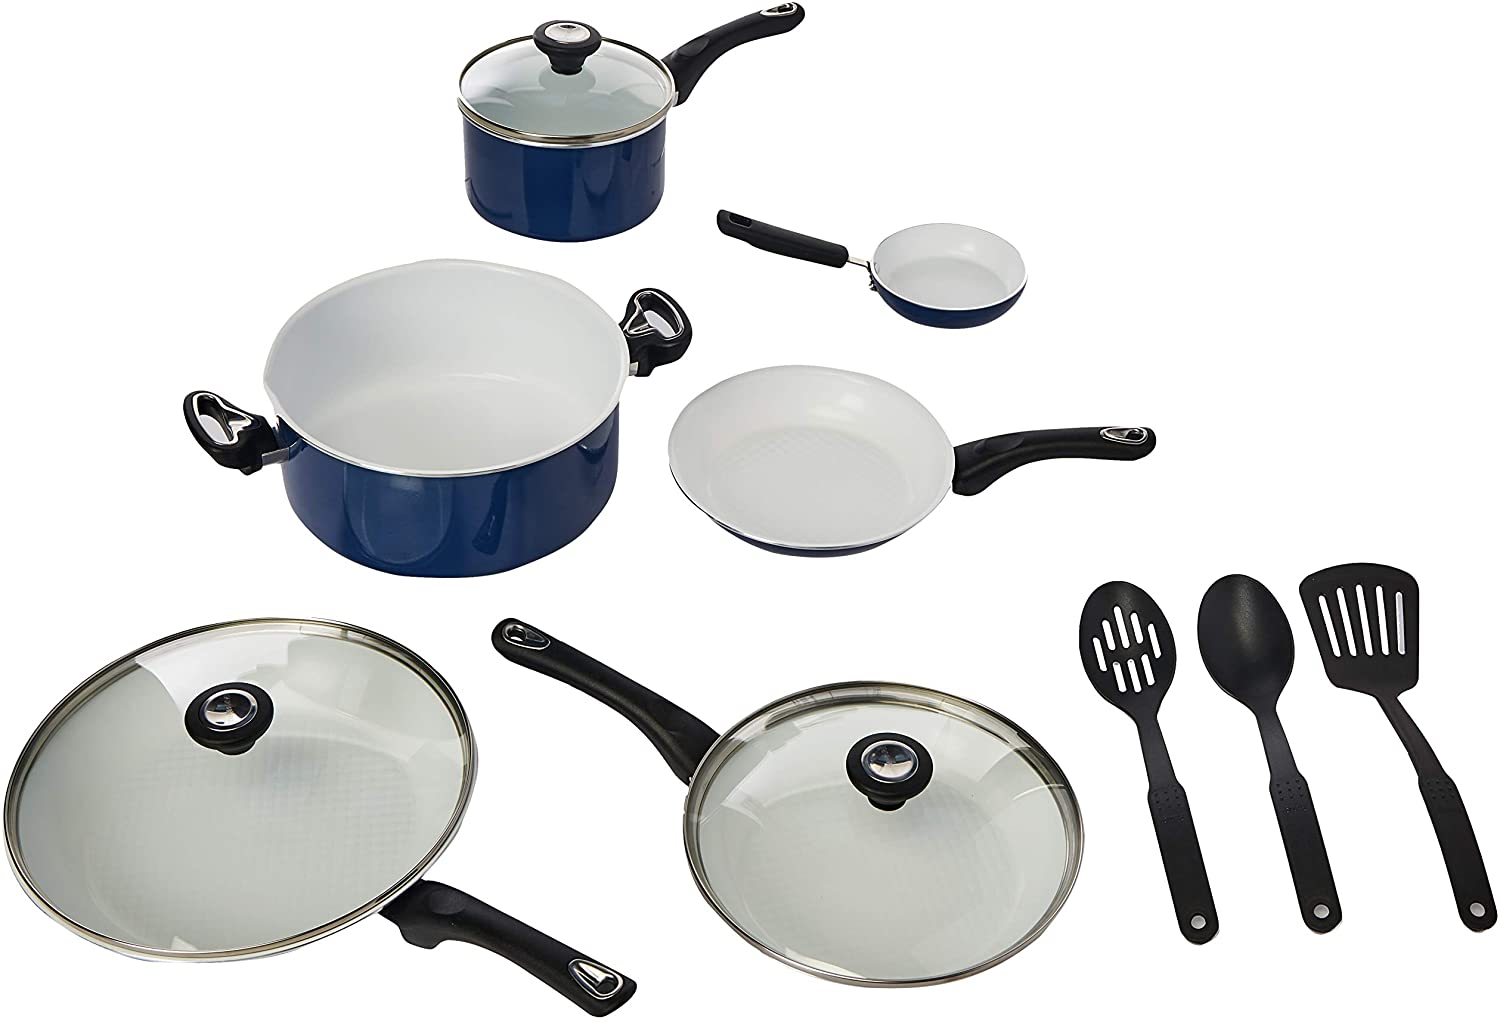 Farberware Ceramic Dishwasher Safe Nonstick Cookware, 12-Piece